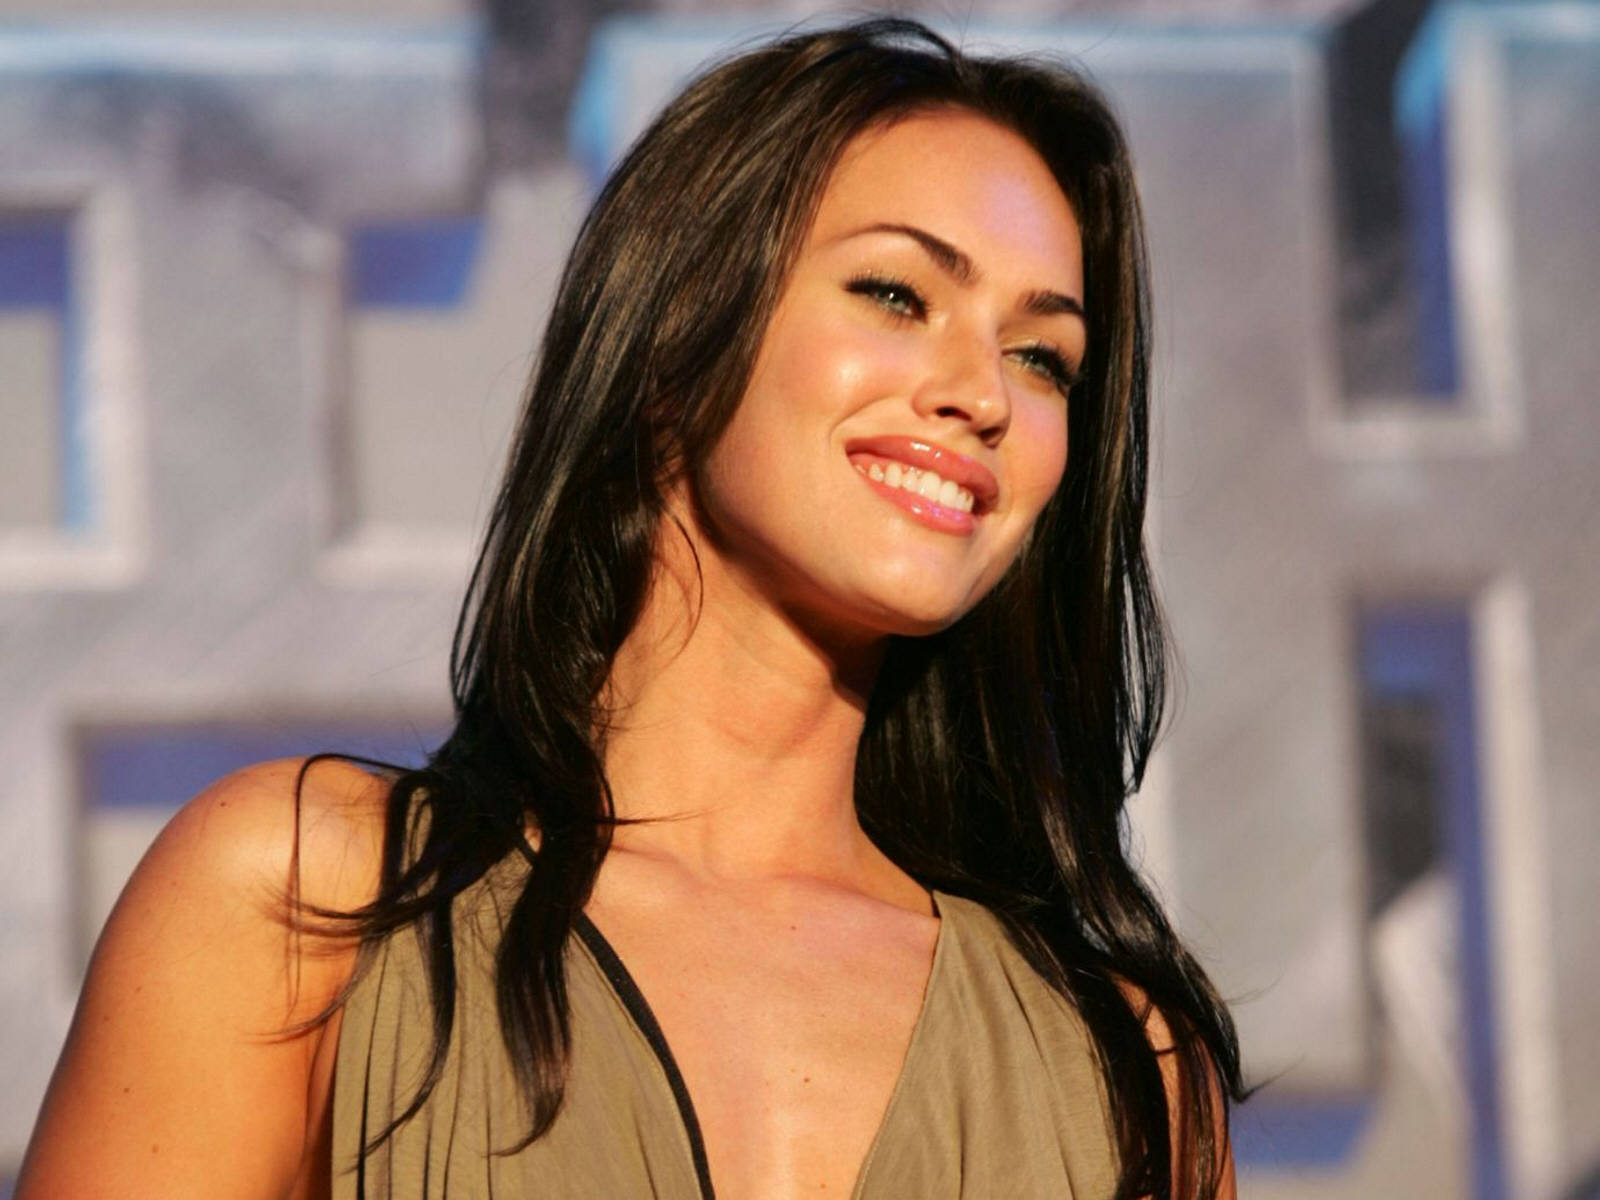 megan fox hot wallpaper megan fox hot wallpaper megan fox 1600x1200